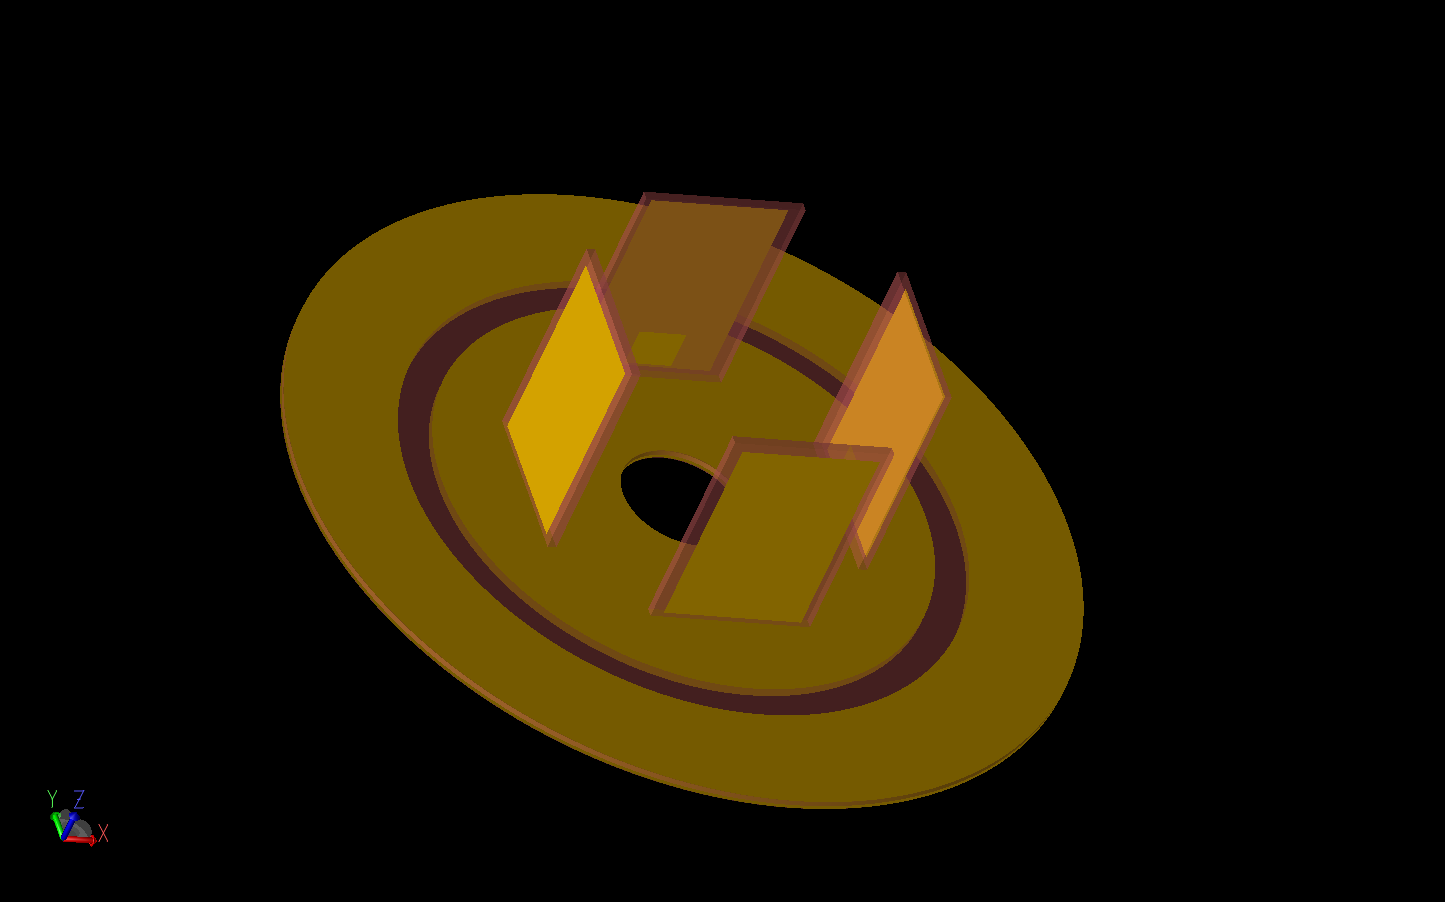 Figure 3: The lower electric monopole array is shown with the four elements arranged on the circular ground plane. There is a small feed patch on the inner side of each element.